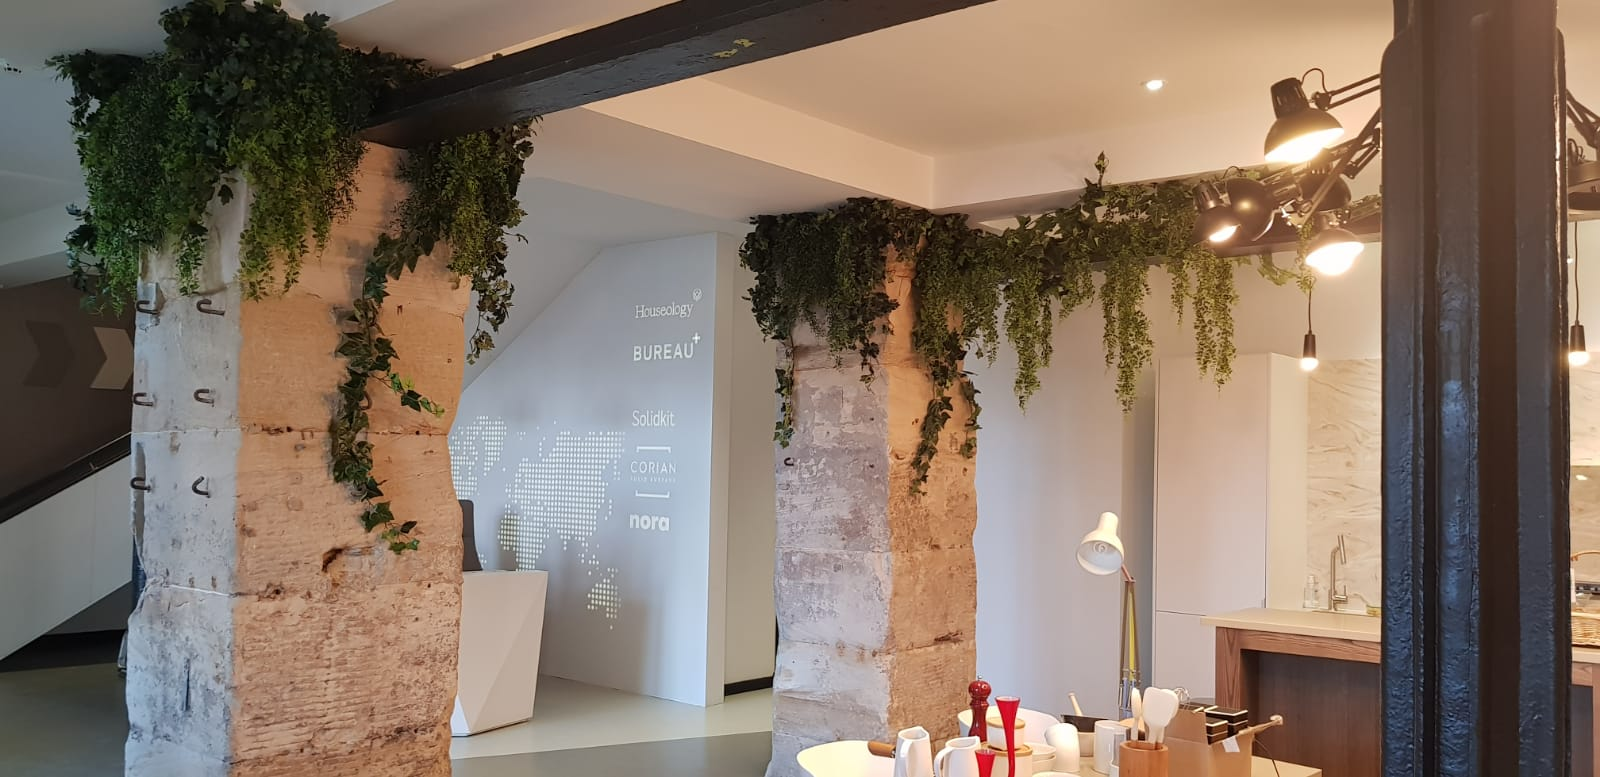 Traditional stone columns and exposed beams in converted offices draped with ivy and foliage make it warm and welcoming